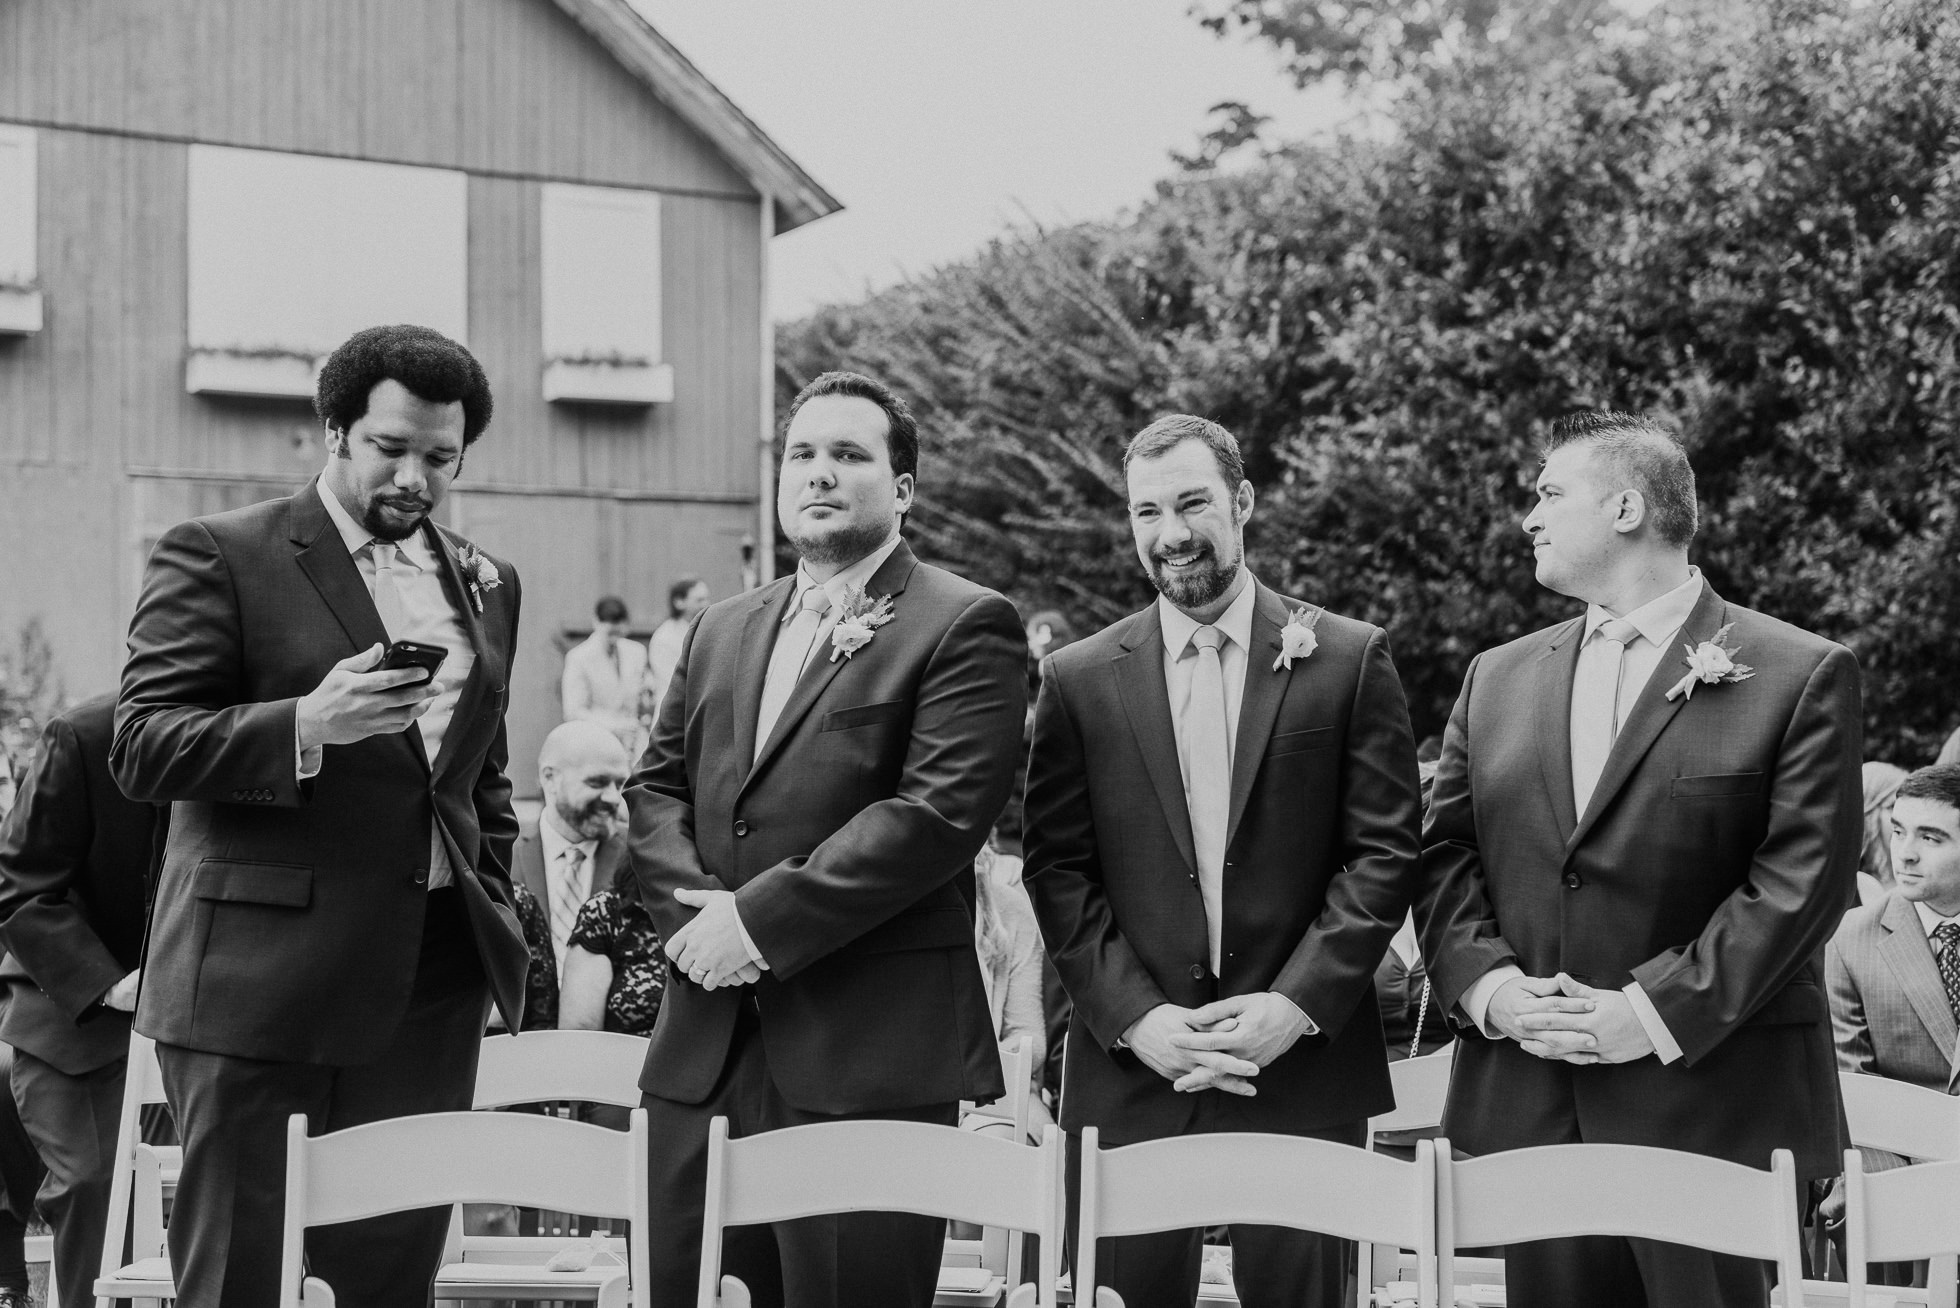 east Hampton outdoor wedding ceremonies